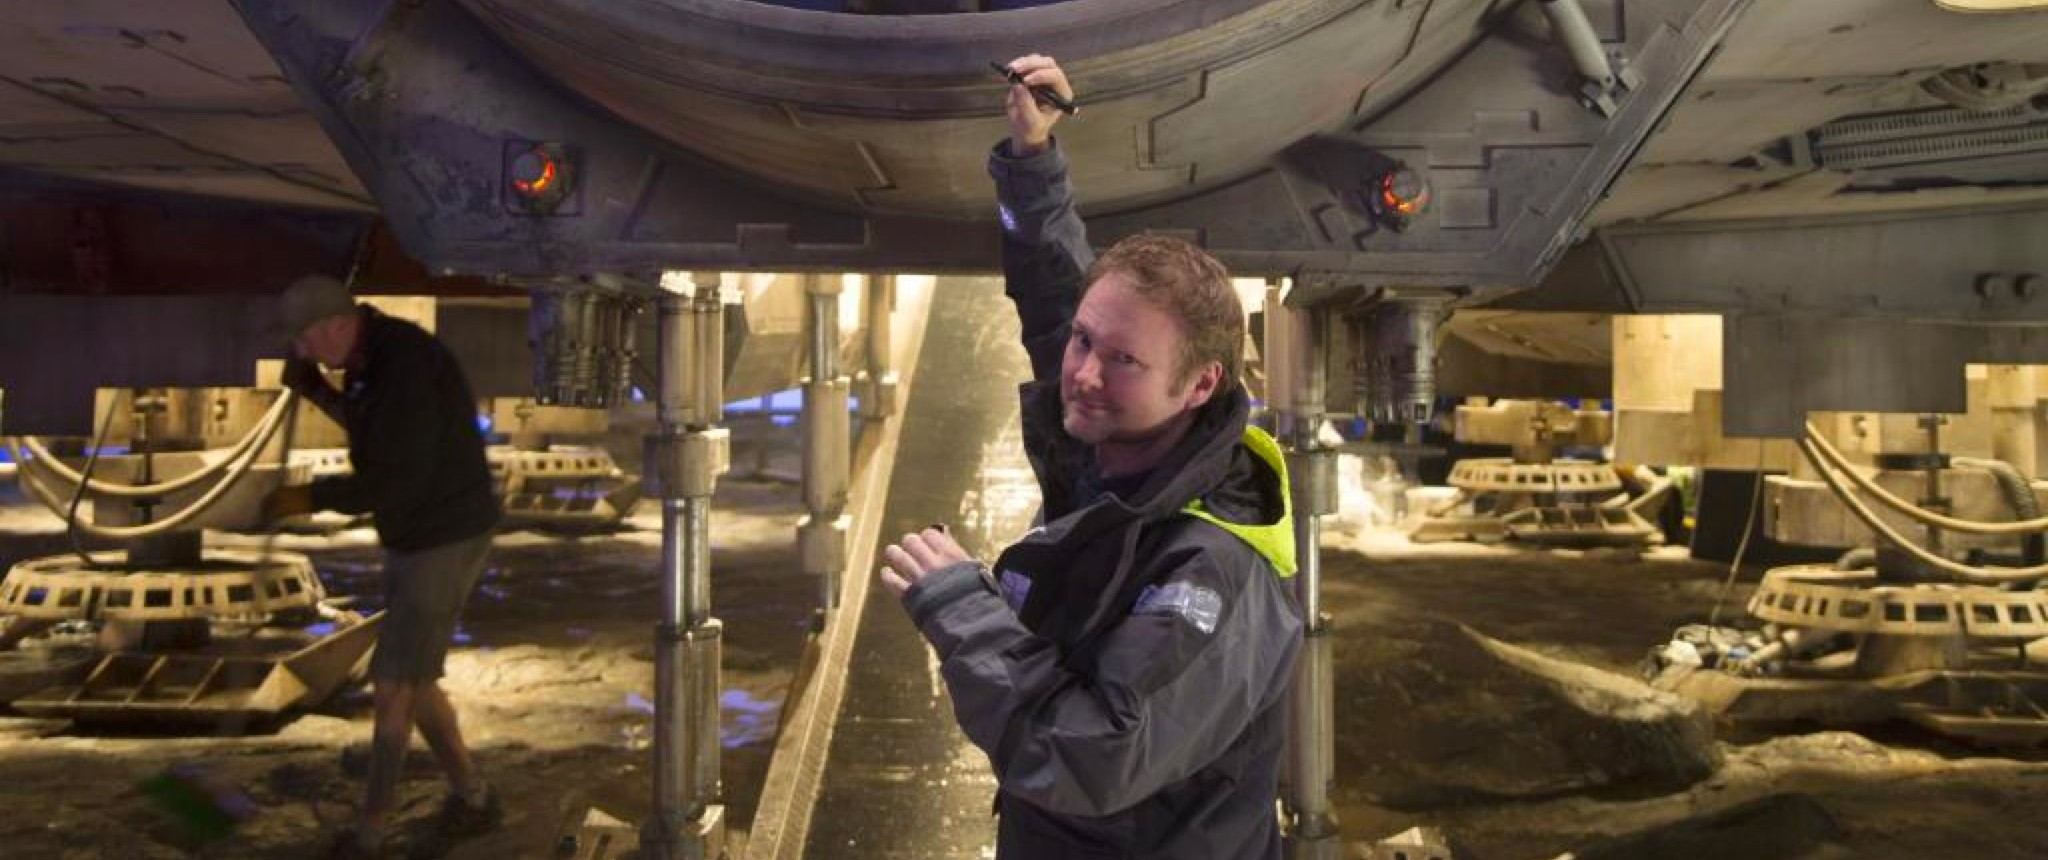 Star Wars Episode 9: Rian Johnson Is Not Involved - photo#20